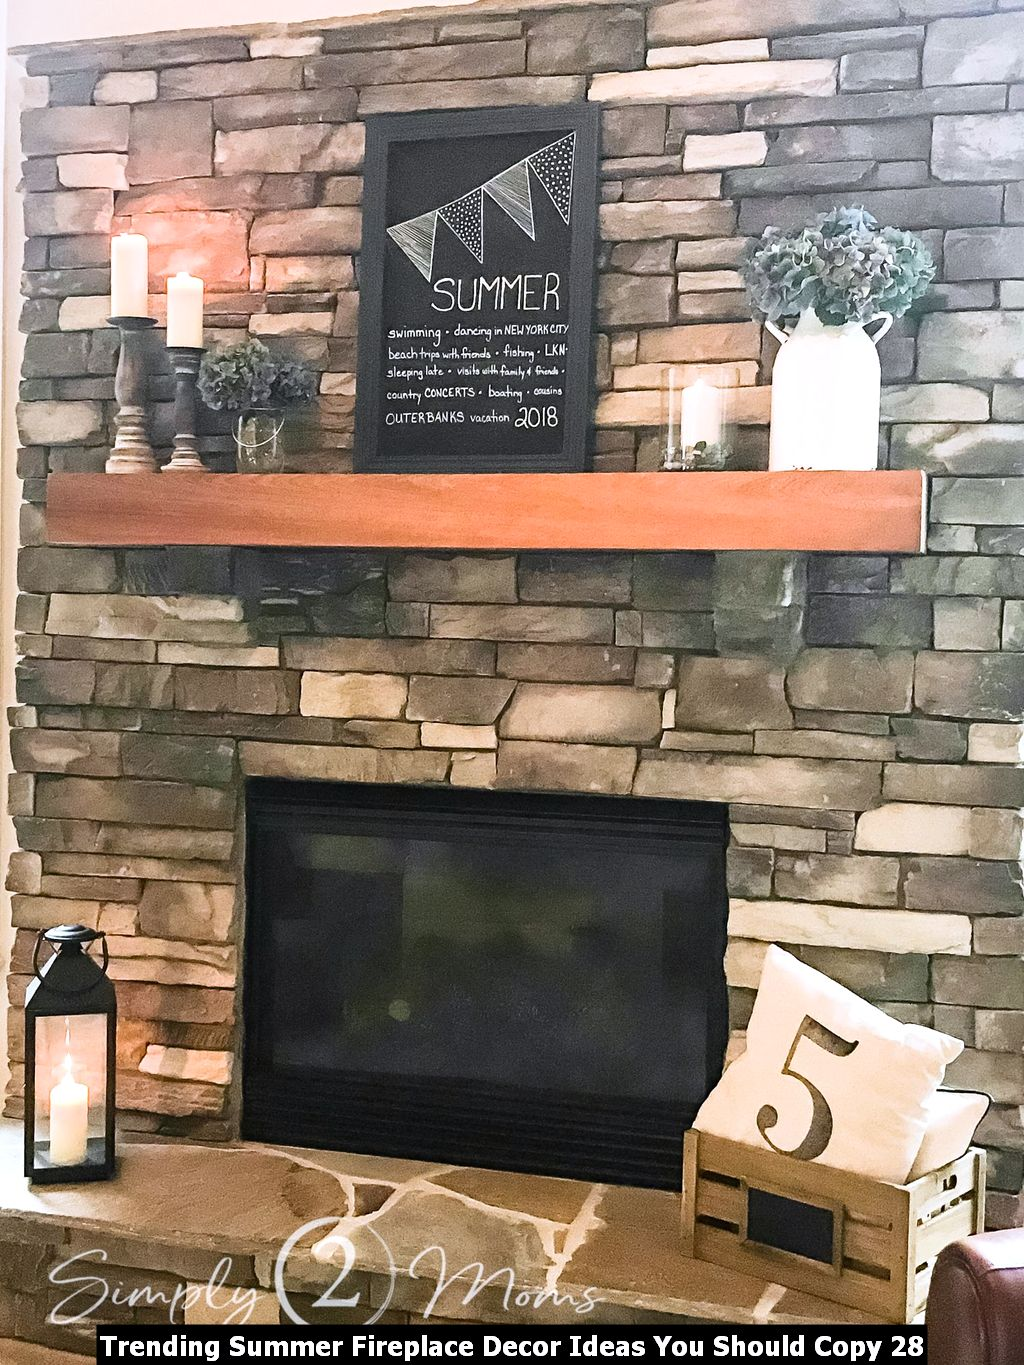 Trending Summer Fireplace Decor Ideas You Should Copy 28